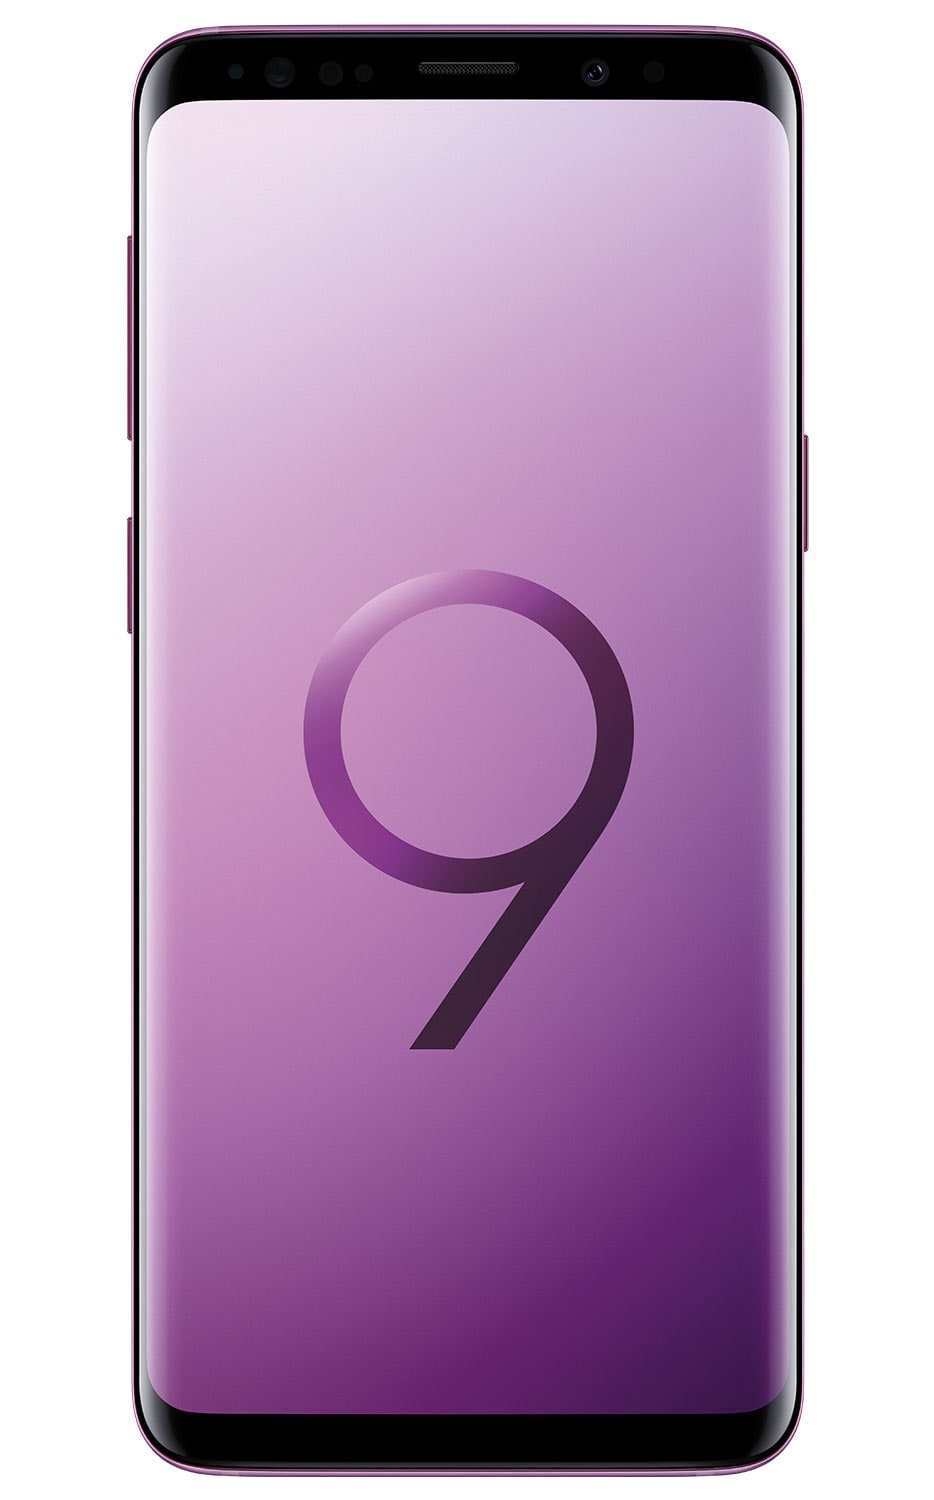 fa648353359 Samsung Galaxy S9 | Galaxy S9 Price, Specs, Reviews & More | T-Mobile